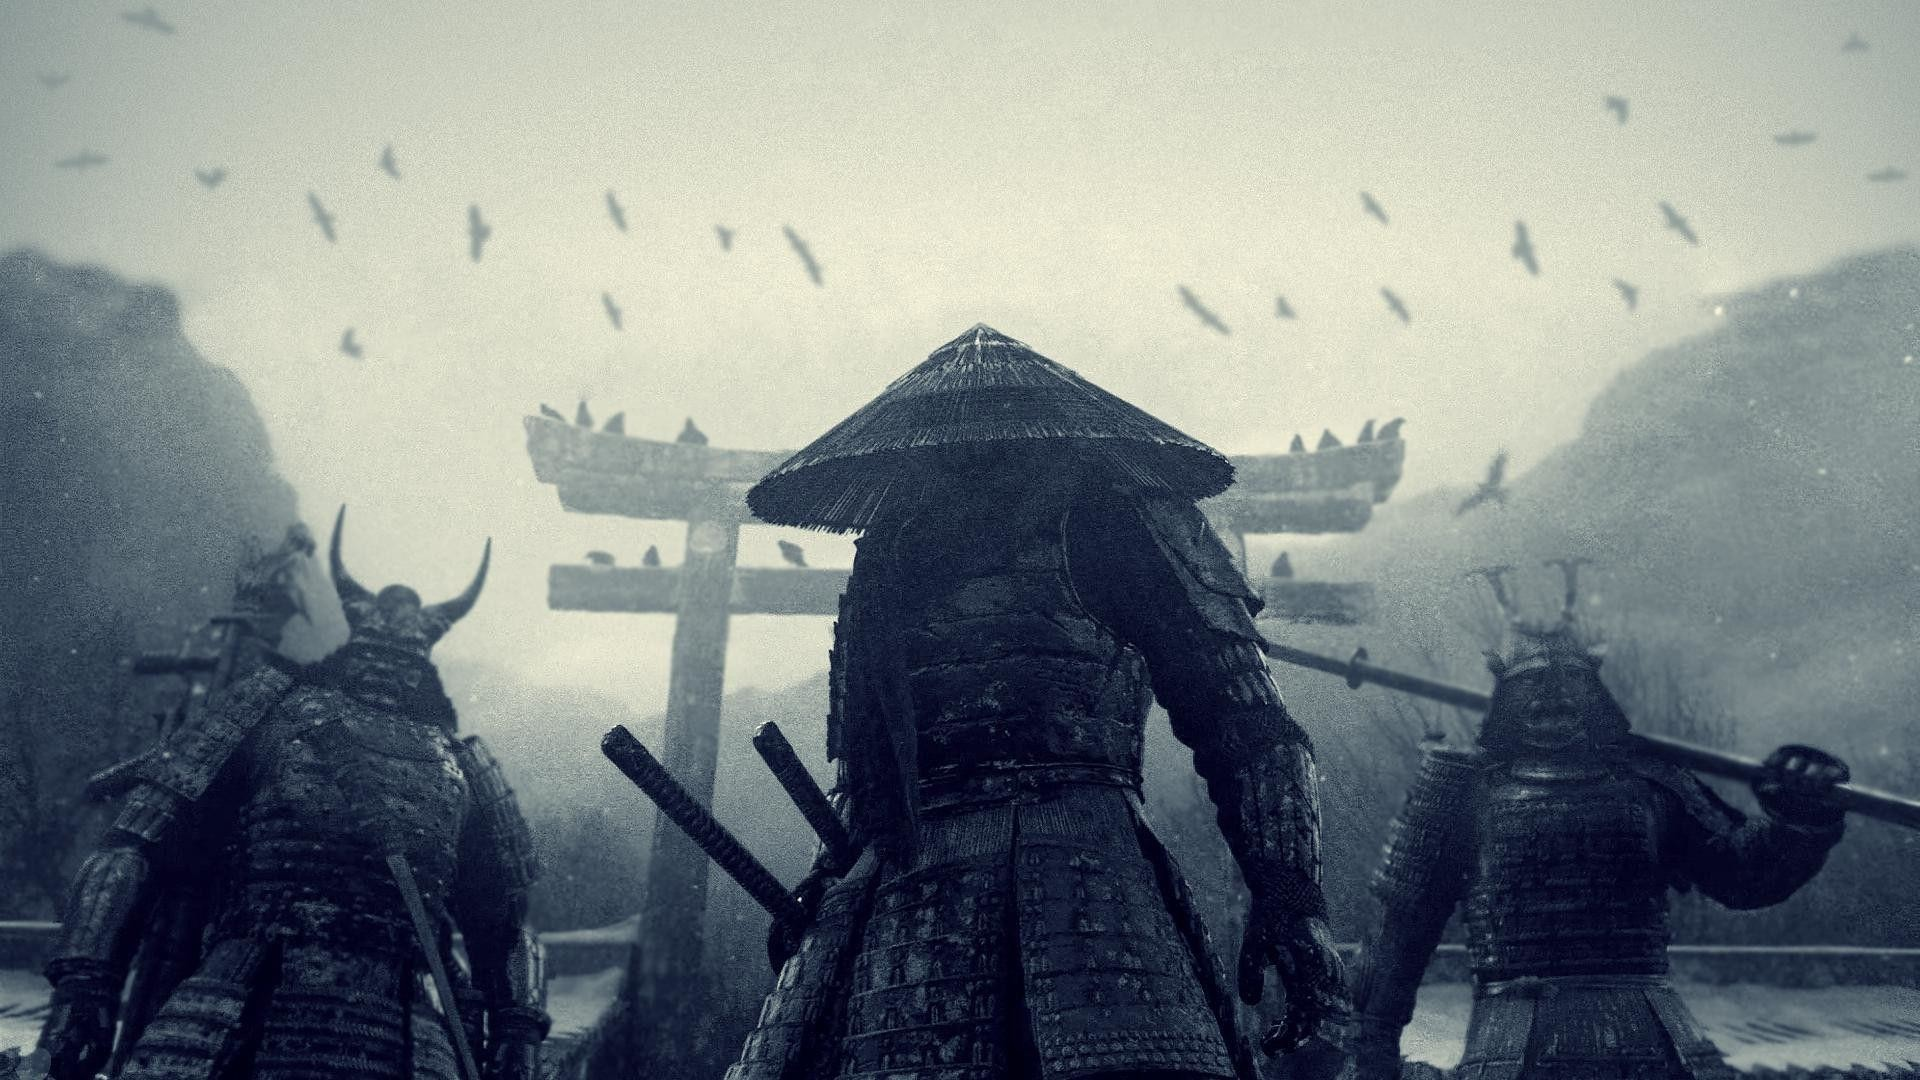 Traditional Japanese Samurai Art Wallpaper